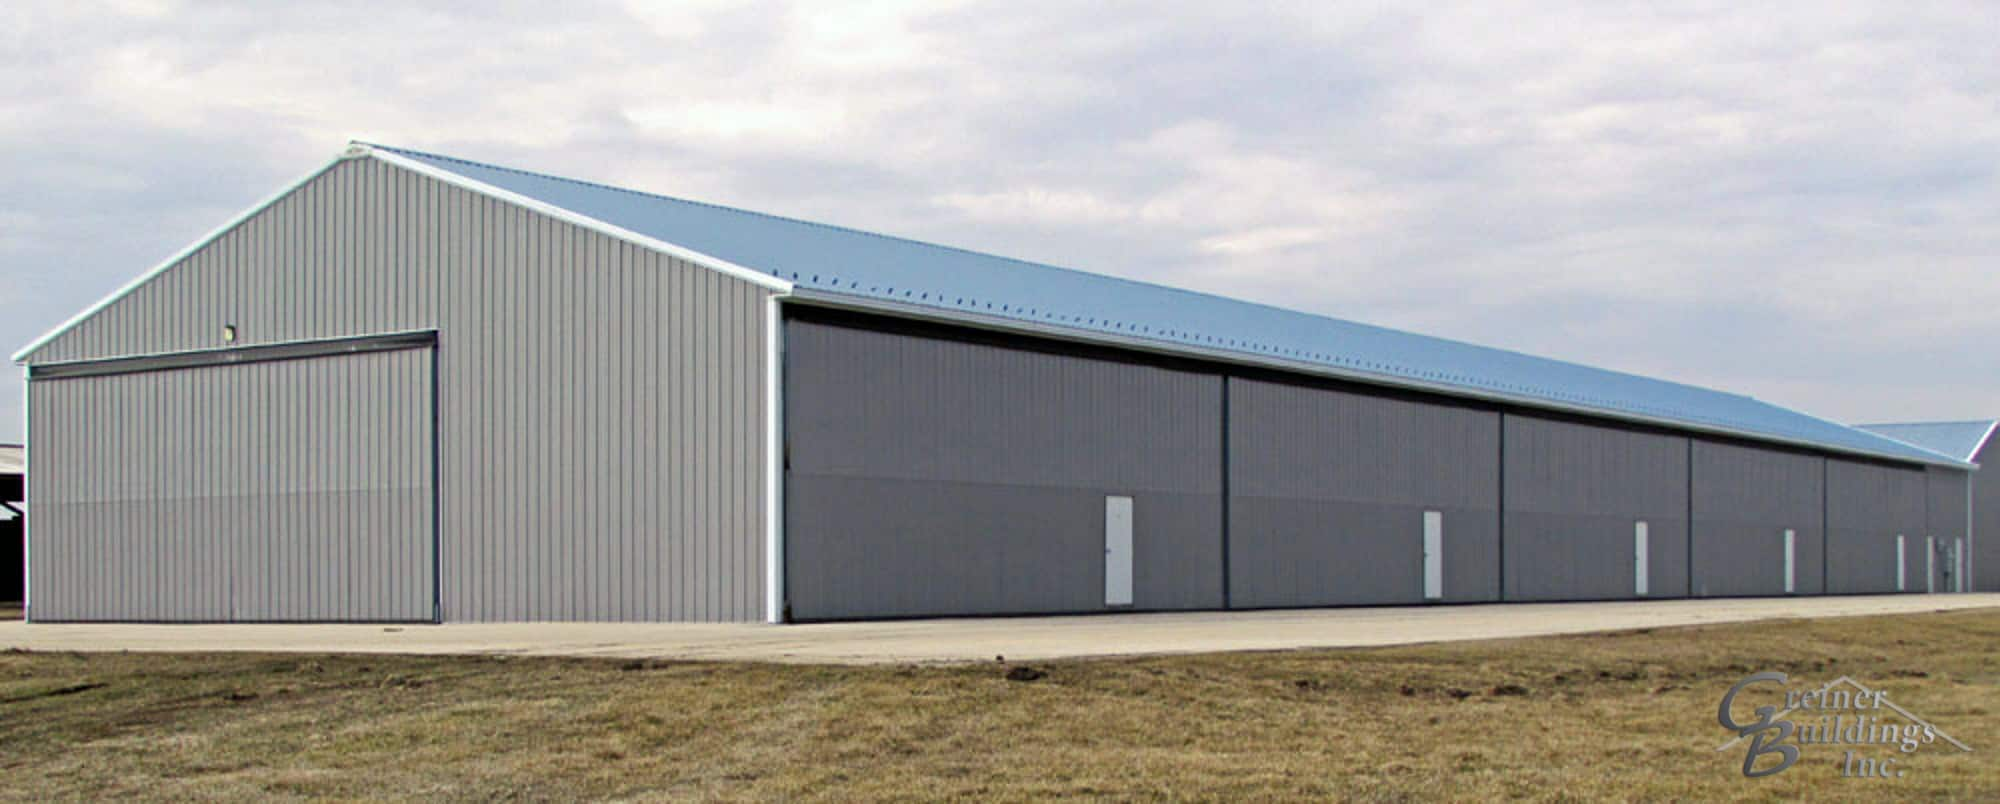 custom airplane hangar construction services